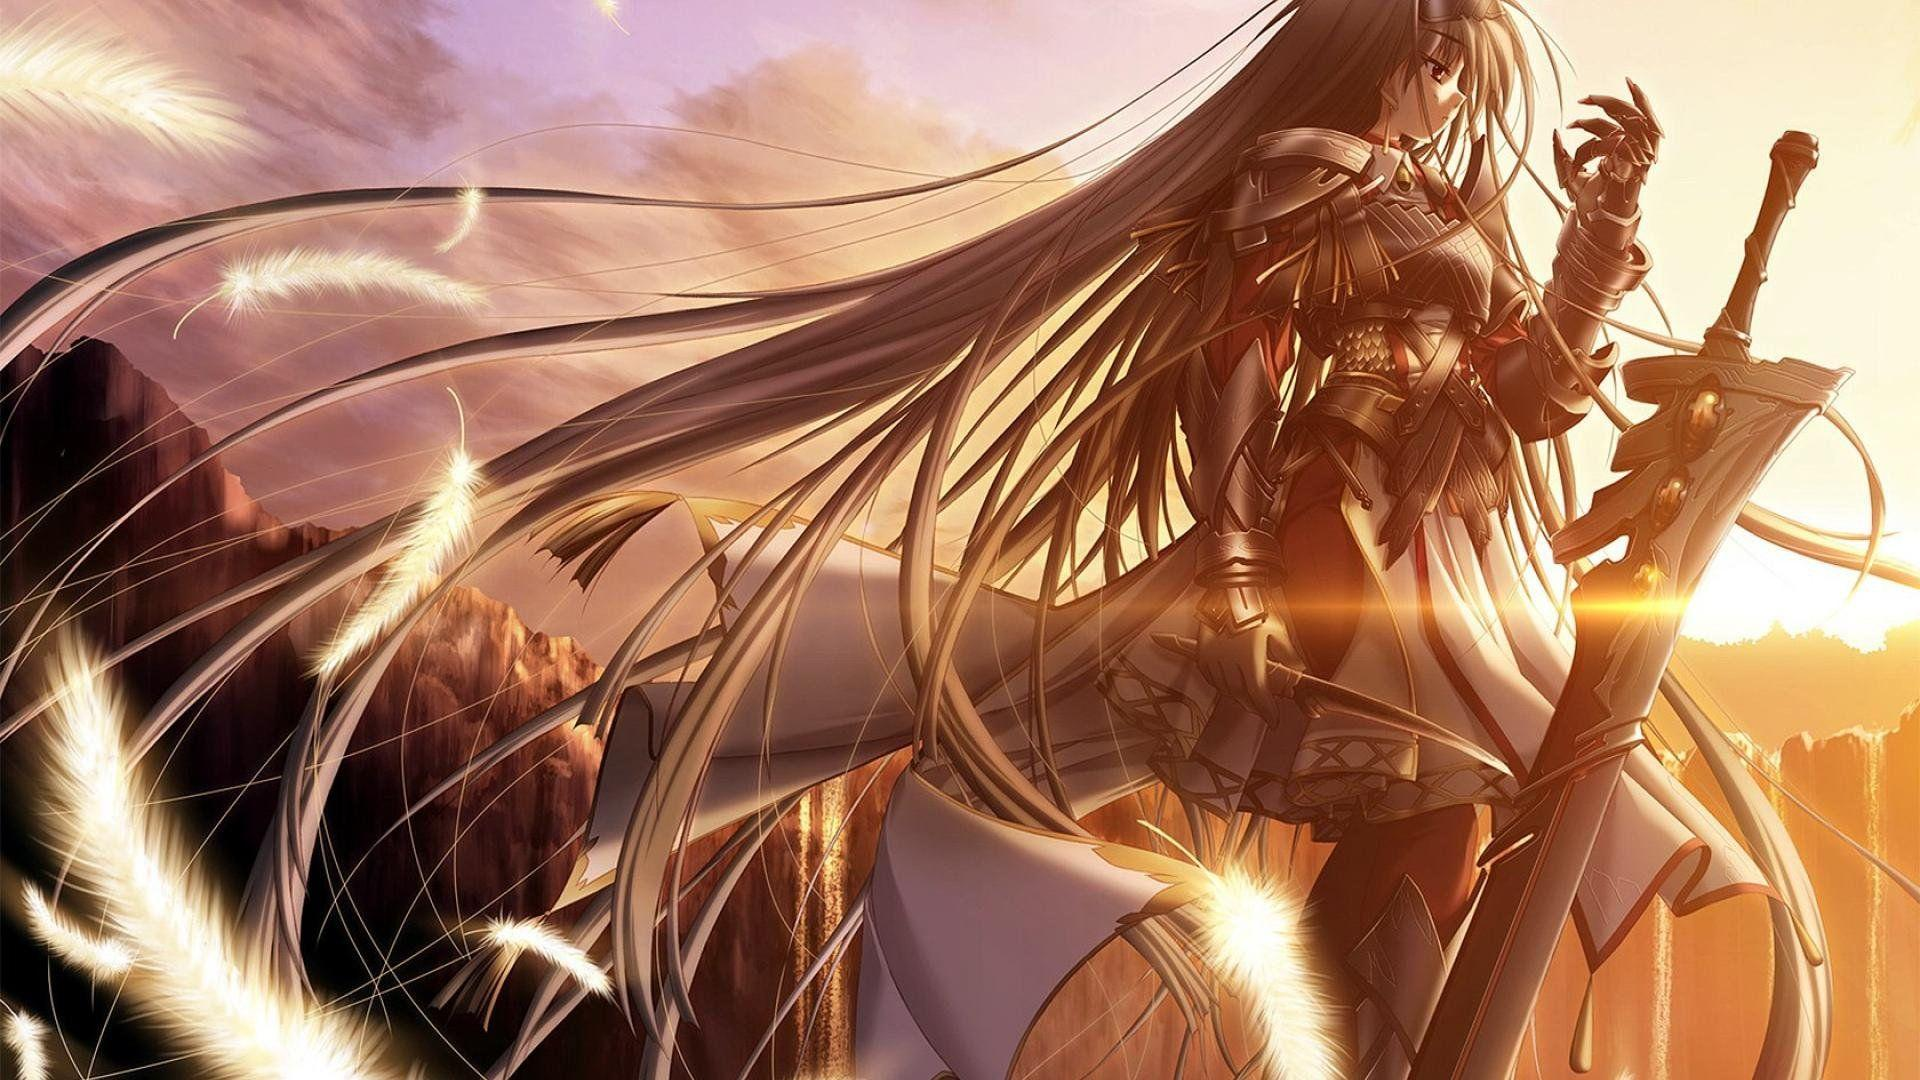 Anime Wallpapers Hd 1080p Wallpaper Cave